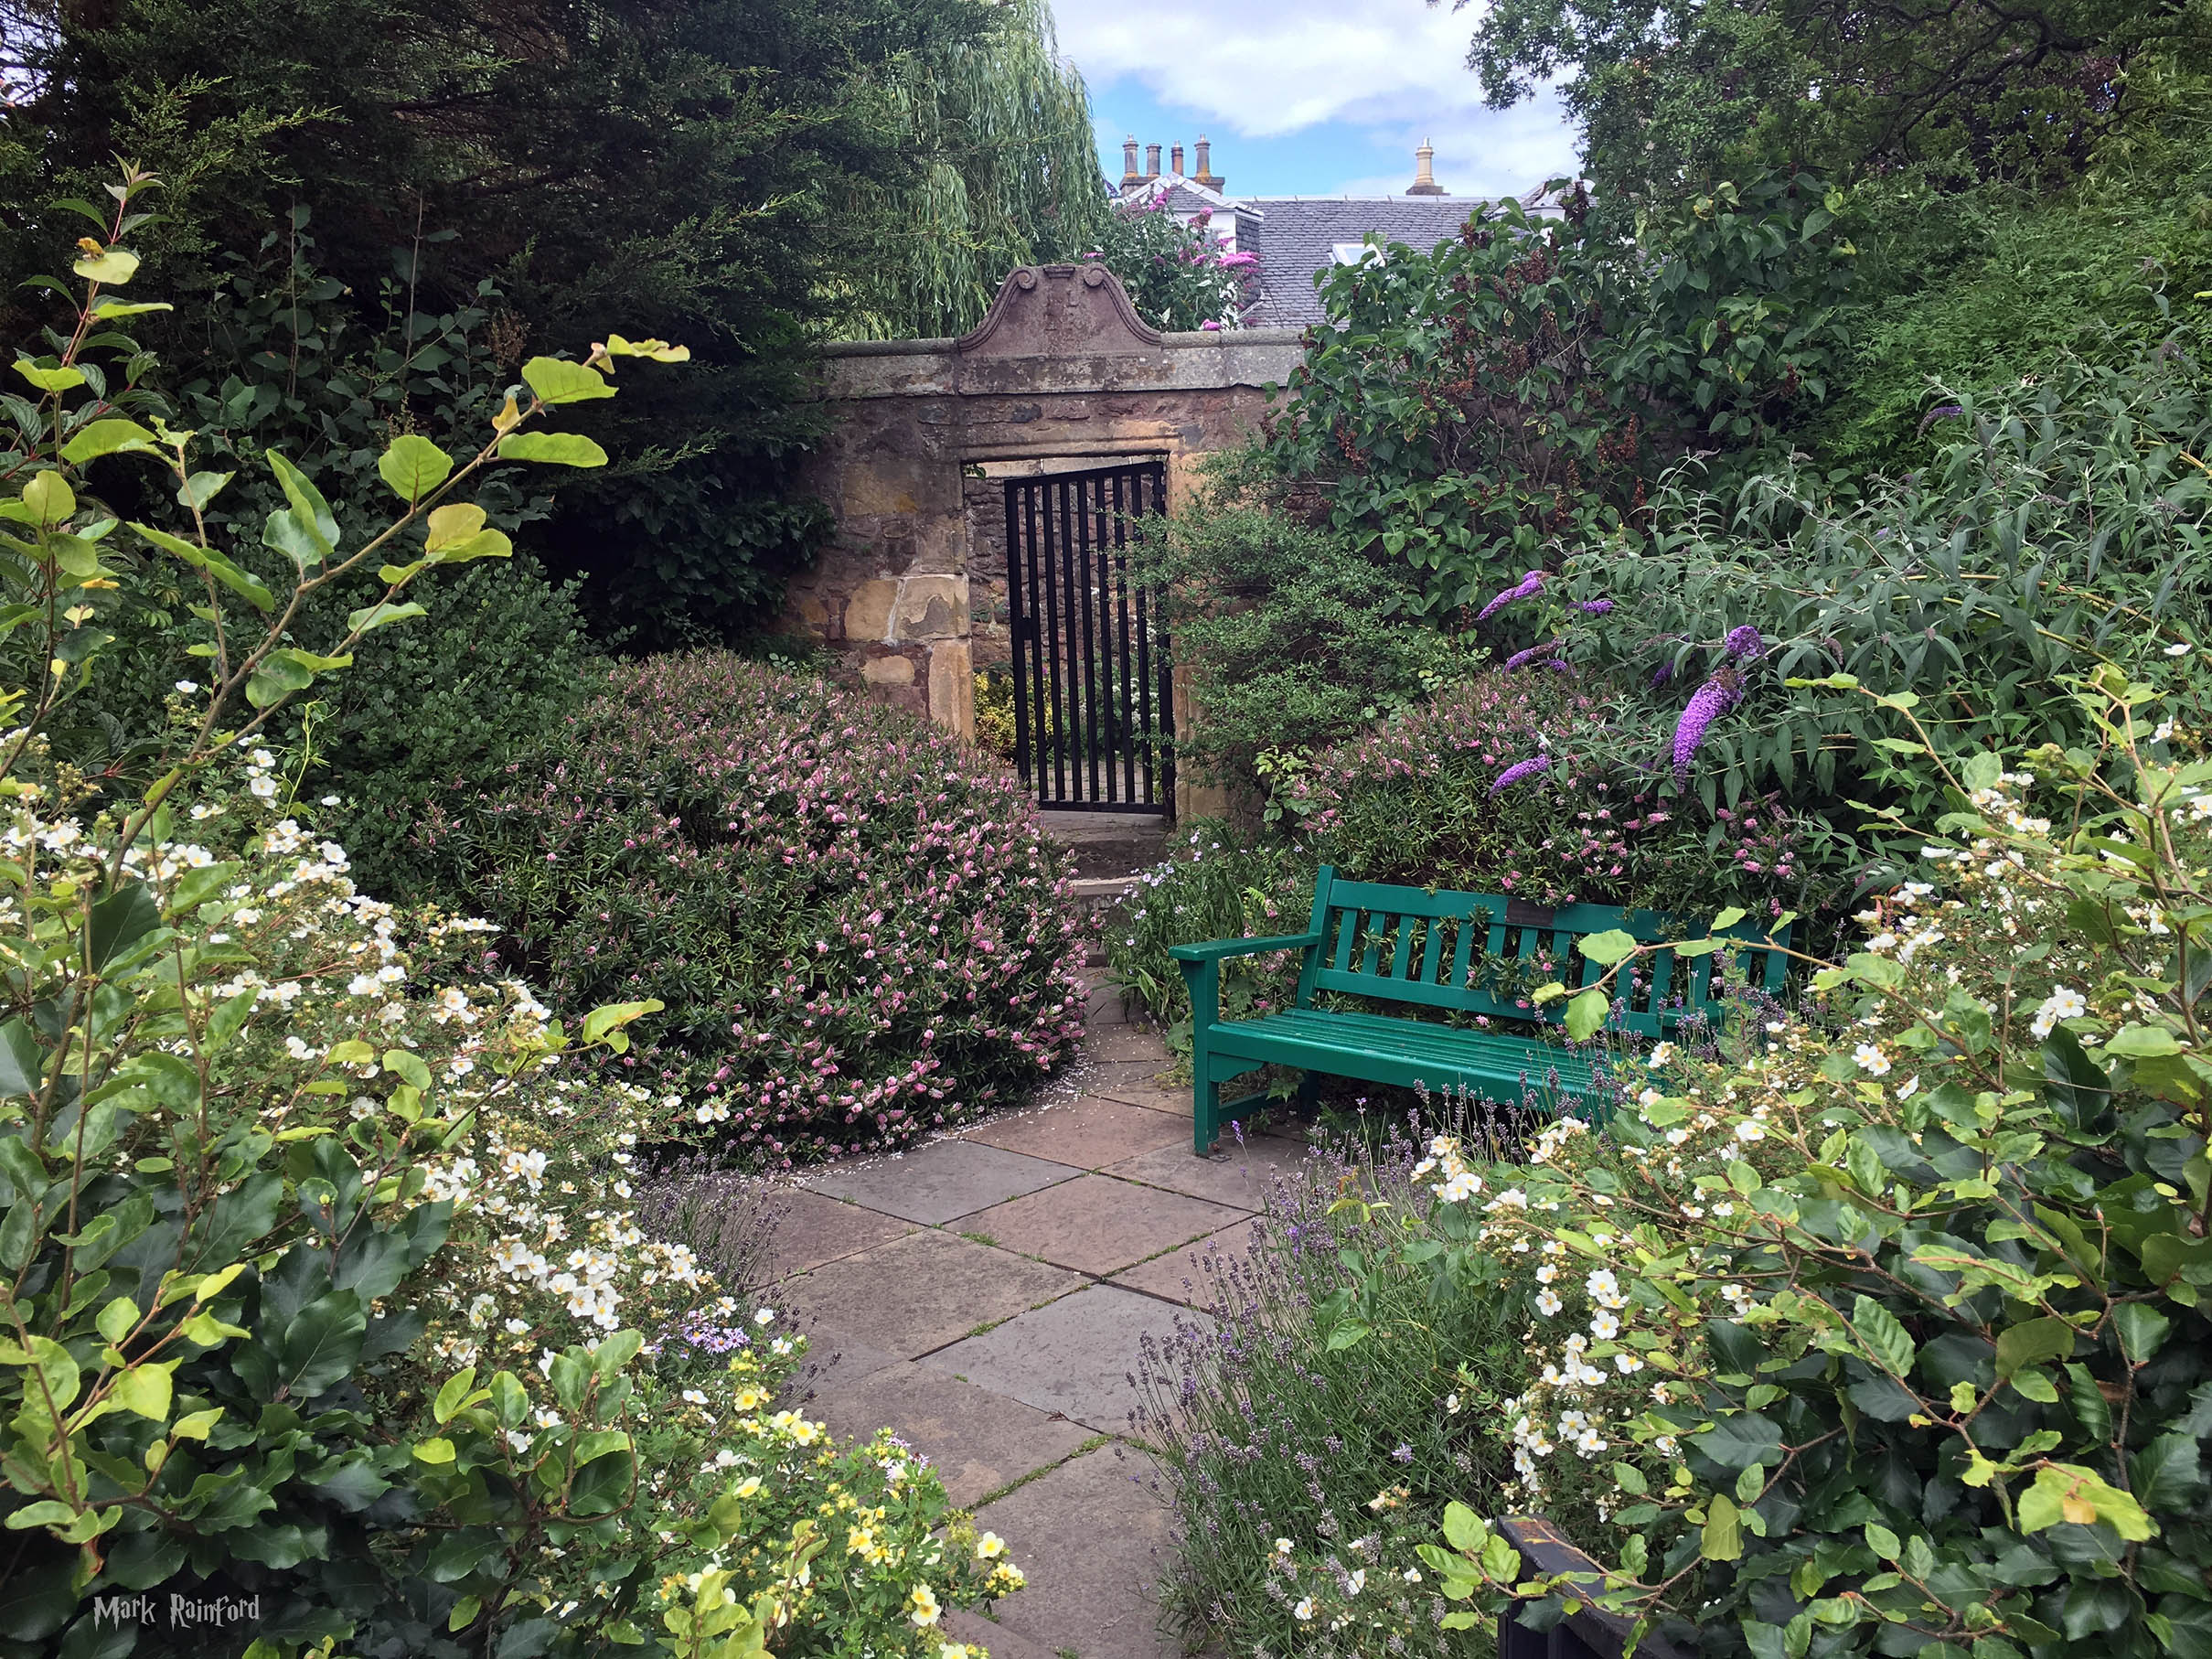 John Livingston's Tomb Garden